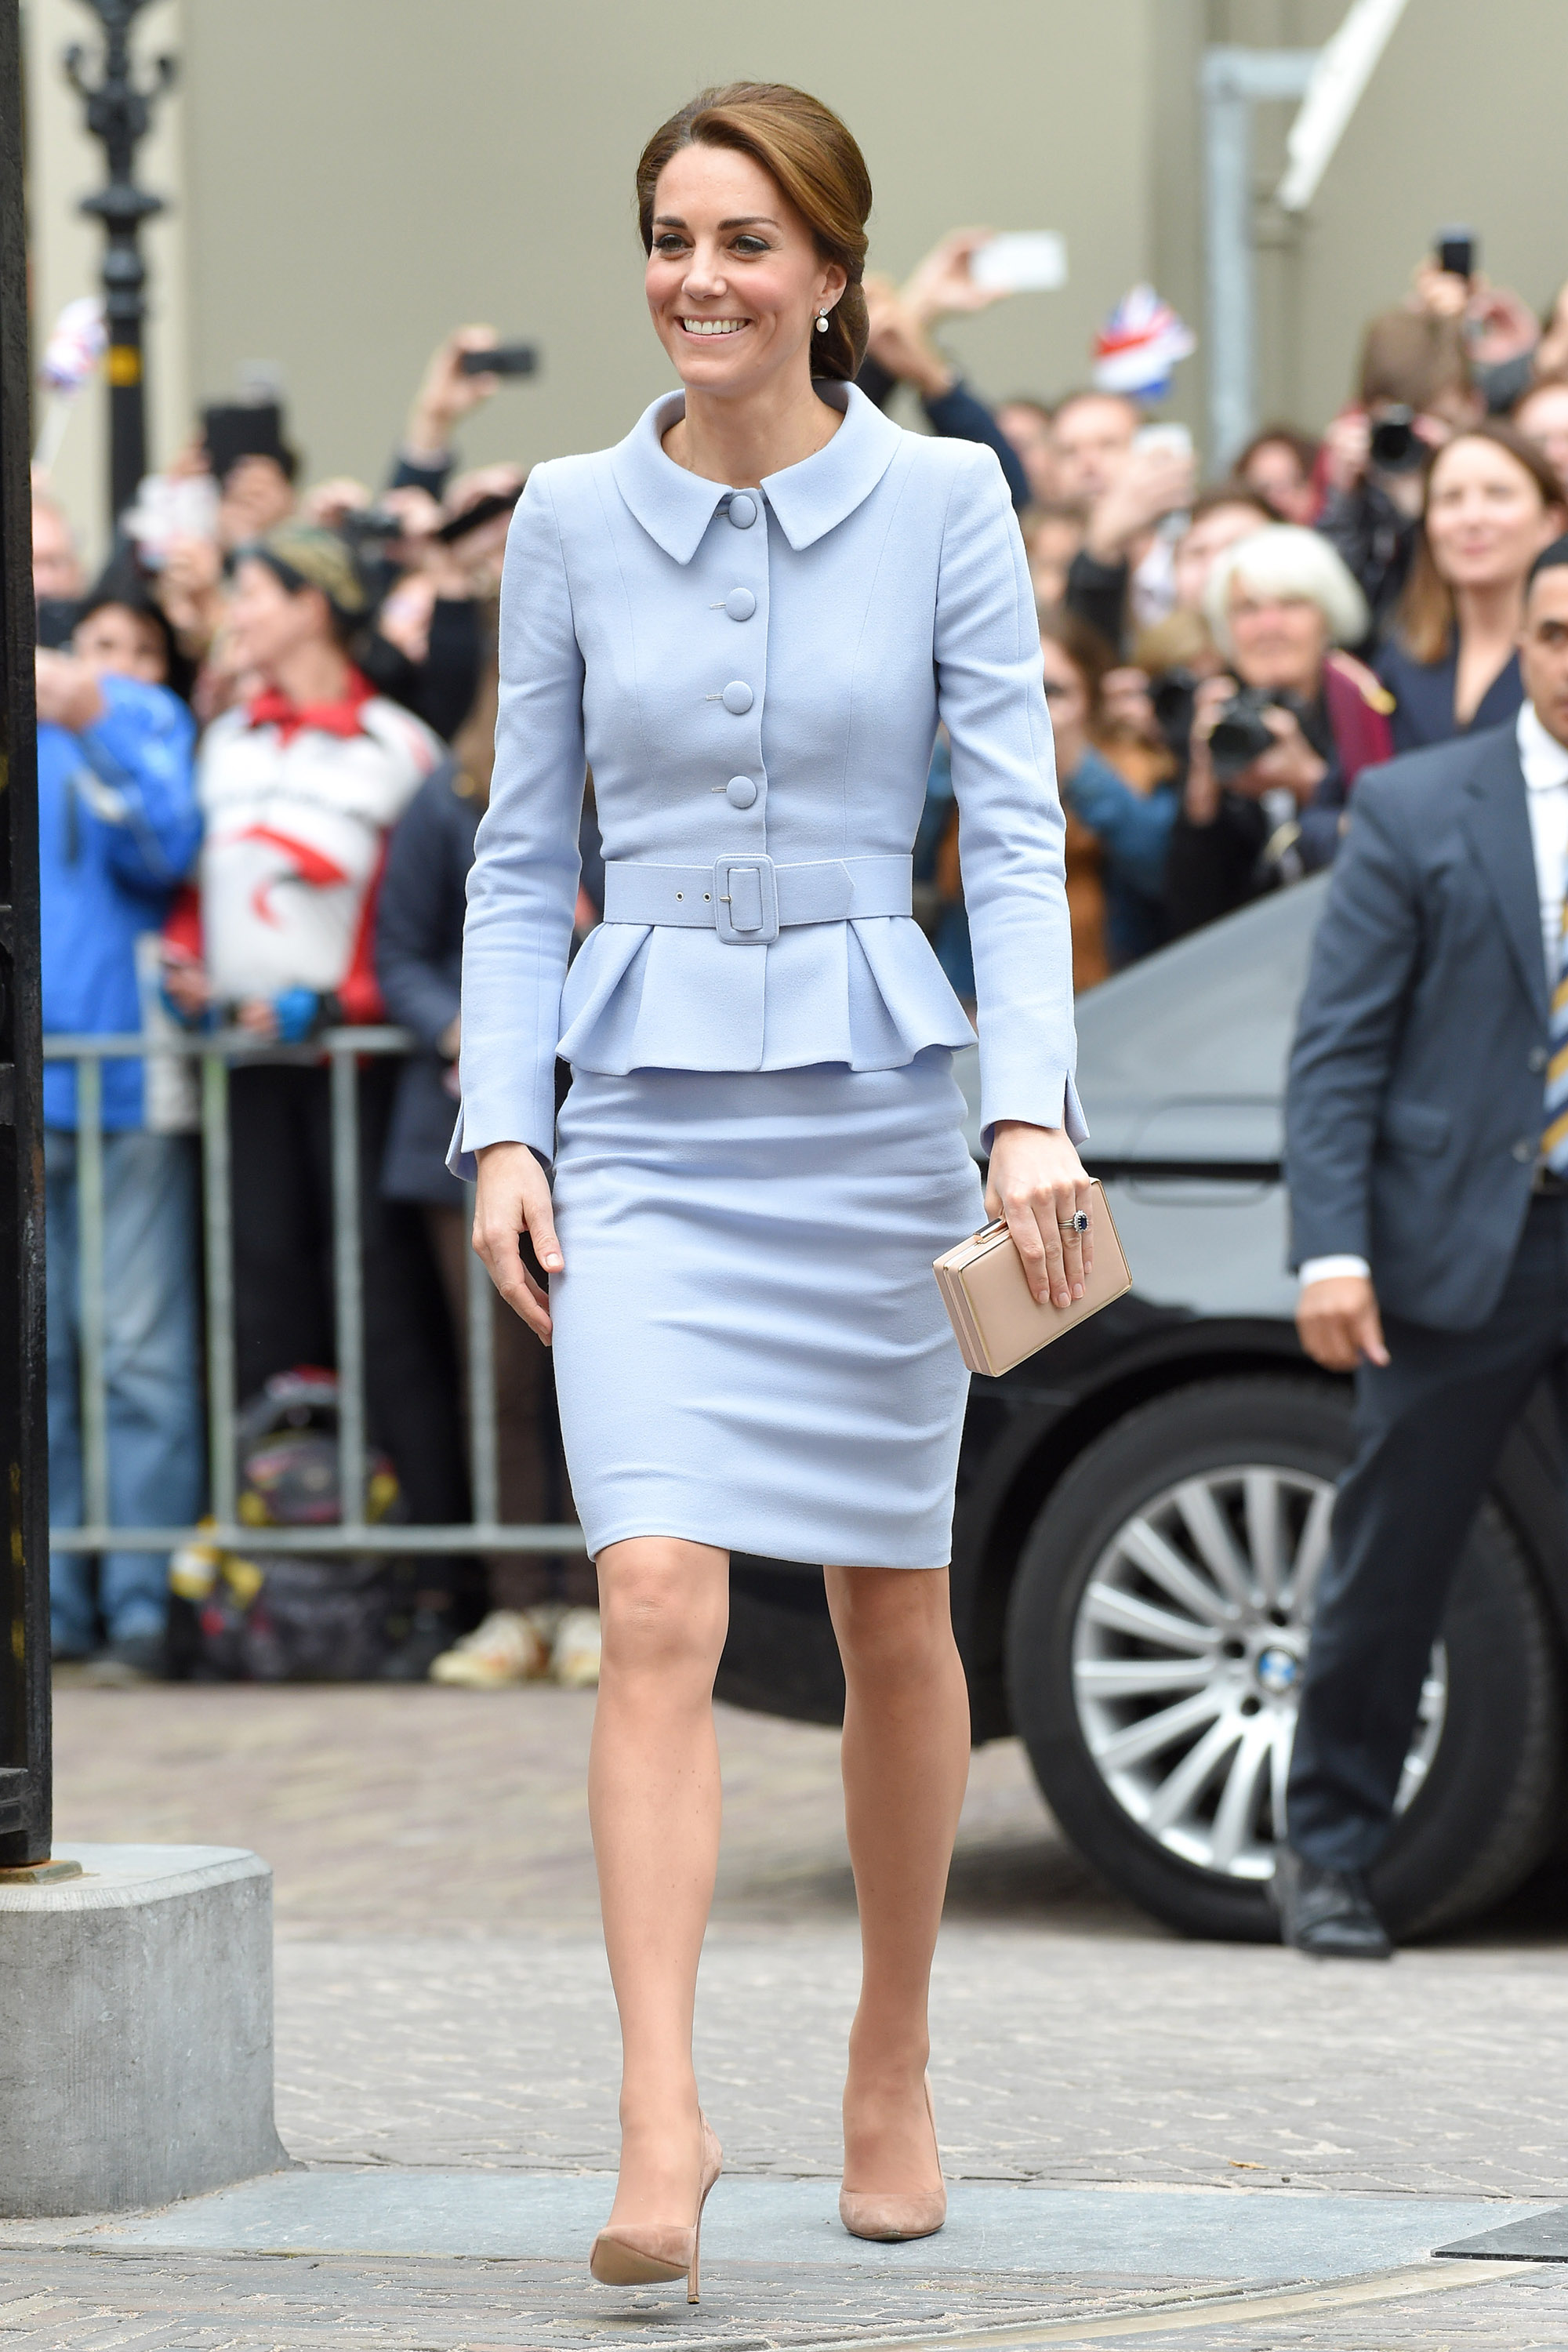 Kate Middleton style- picking a super dress for women